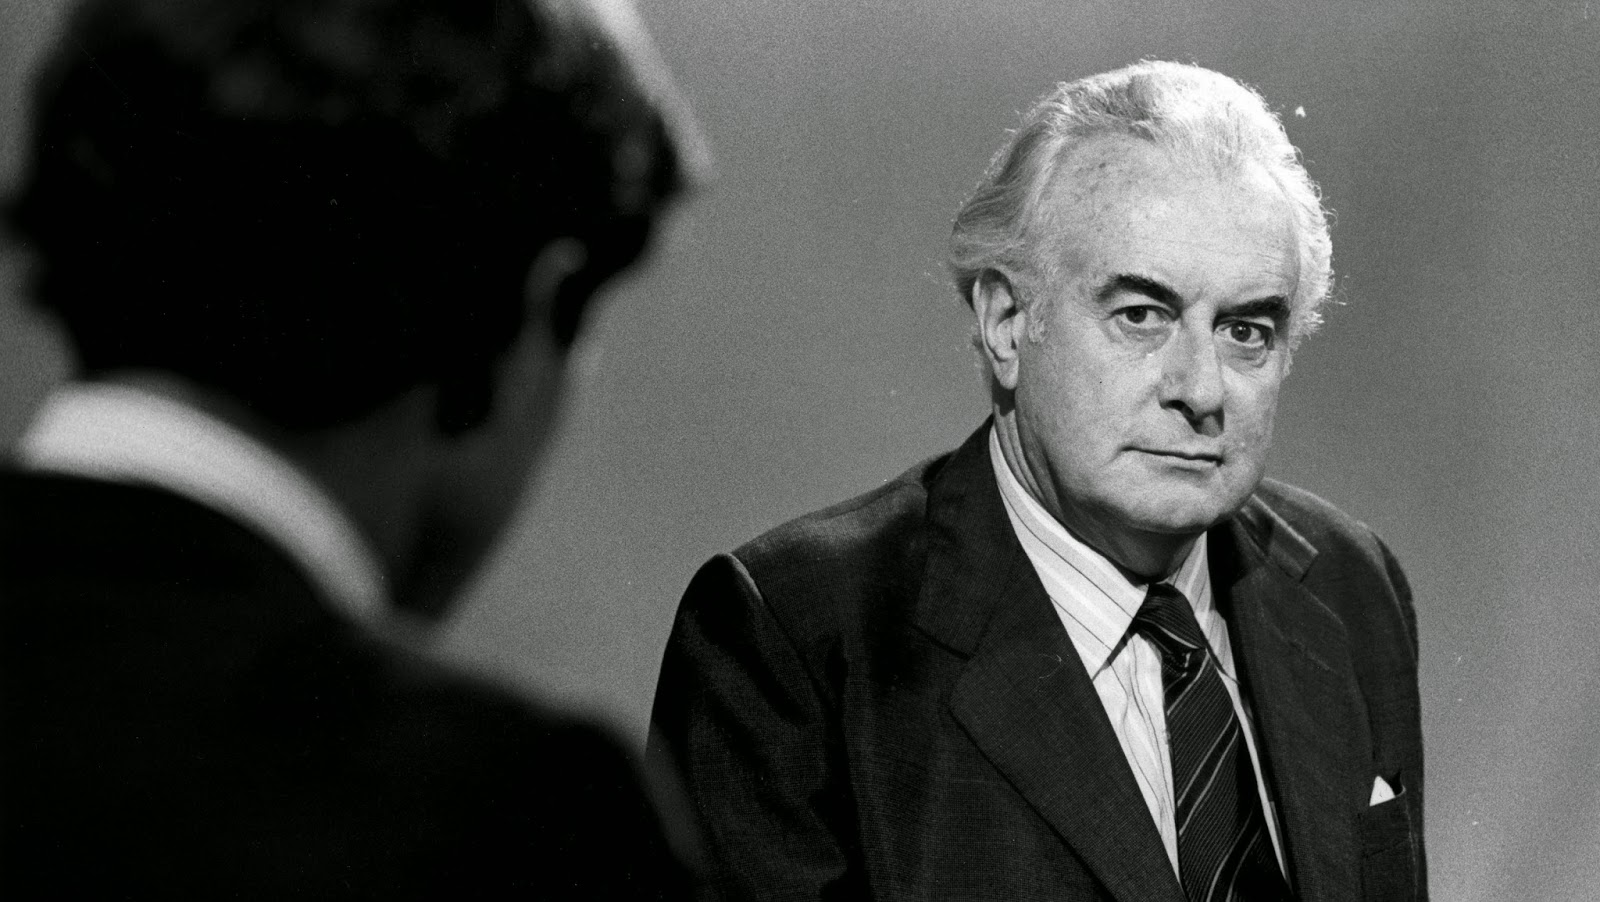 gough whitlam Edward gough whitlam (11 july 1916 – 21 october 2014), known gough whitlam, was an australian politician he was the 21st prime minister of australia, and the only prime minister to have been dismissed from office by a governor-general.